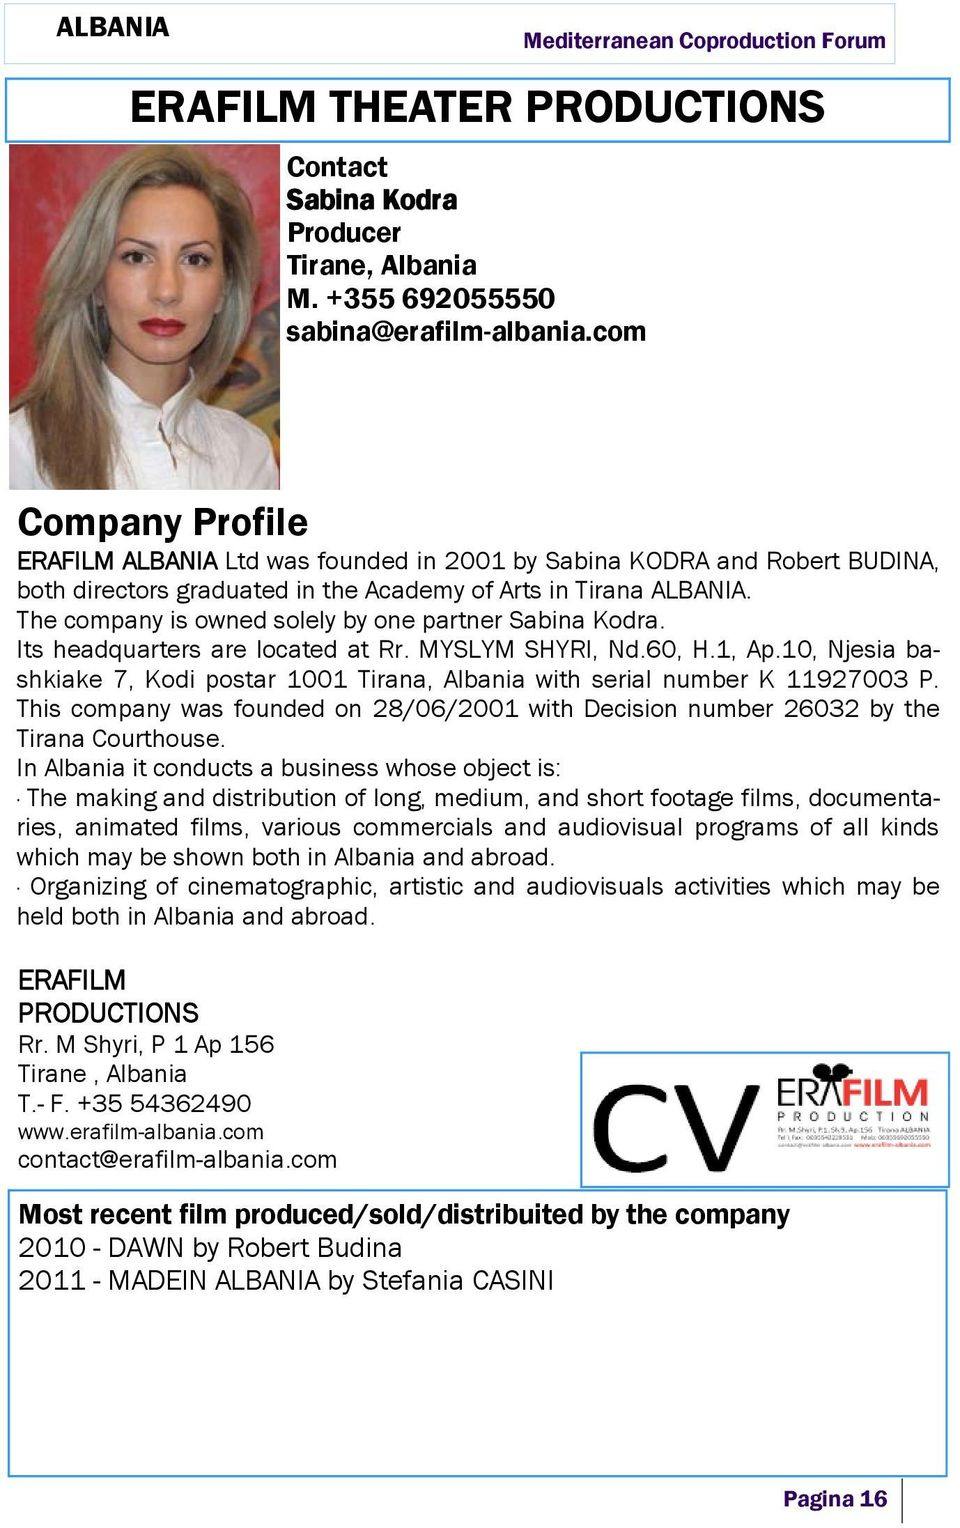 The company is owned solely by one partner Sabina Kodra. Its headquarters are located at Rr. MYSLYM SHYRI, Nd.60, H.1, Ap.